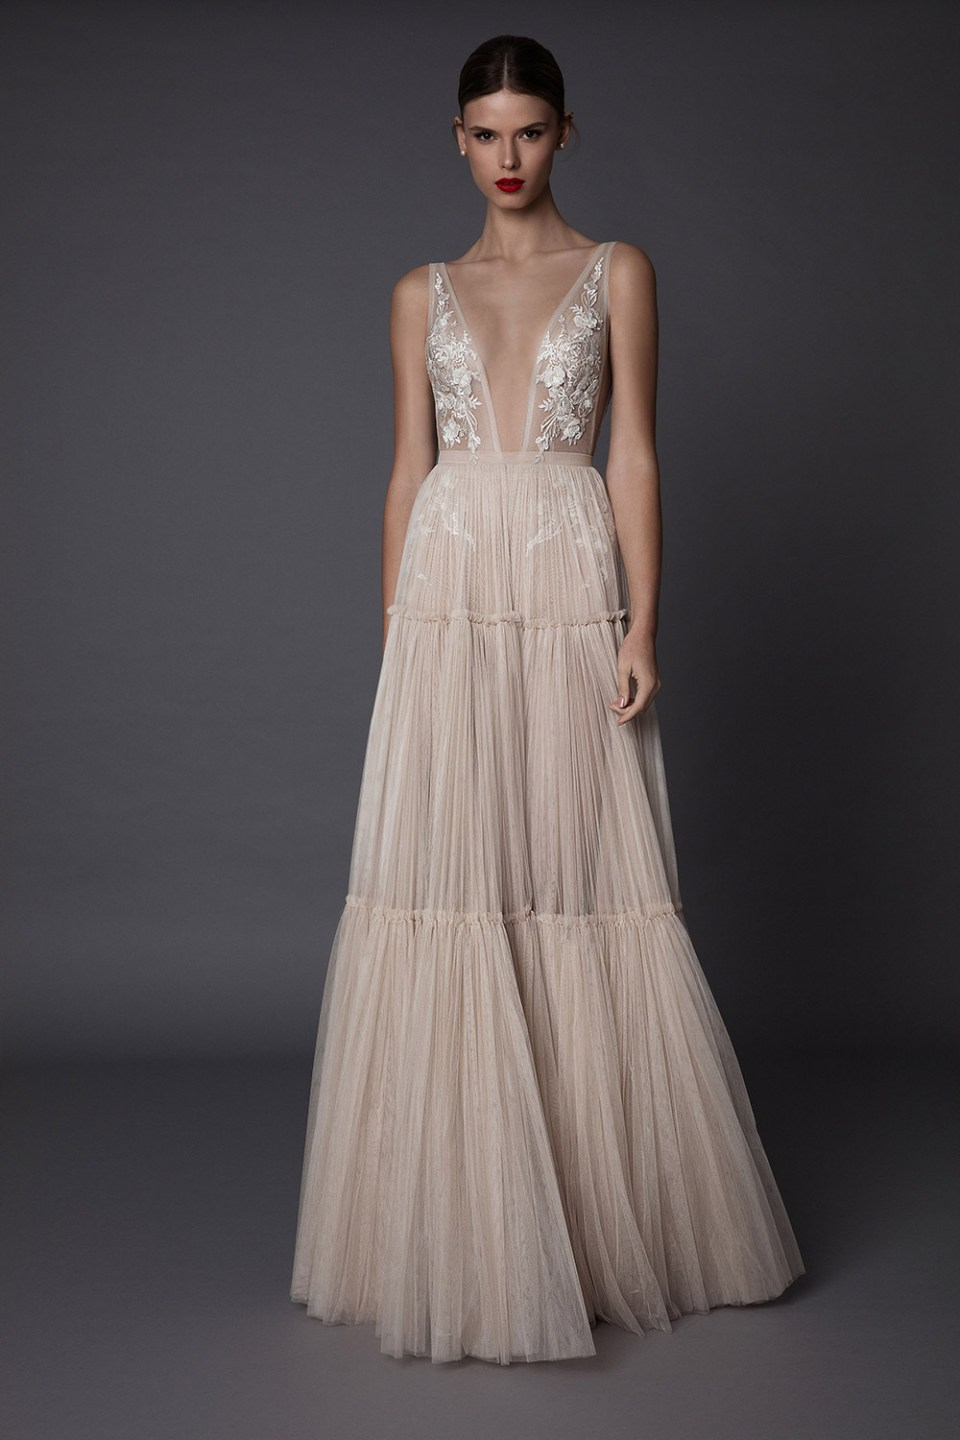 Annabel - Muse by Berta Fall 2017 Collection. www.theweddingnotebook.com